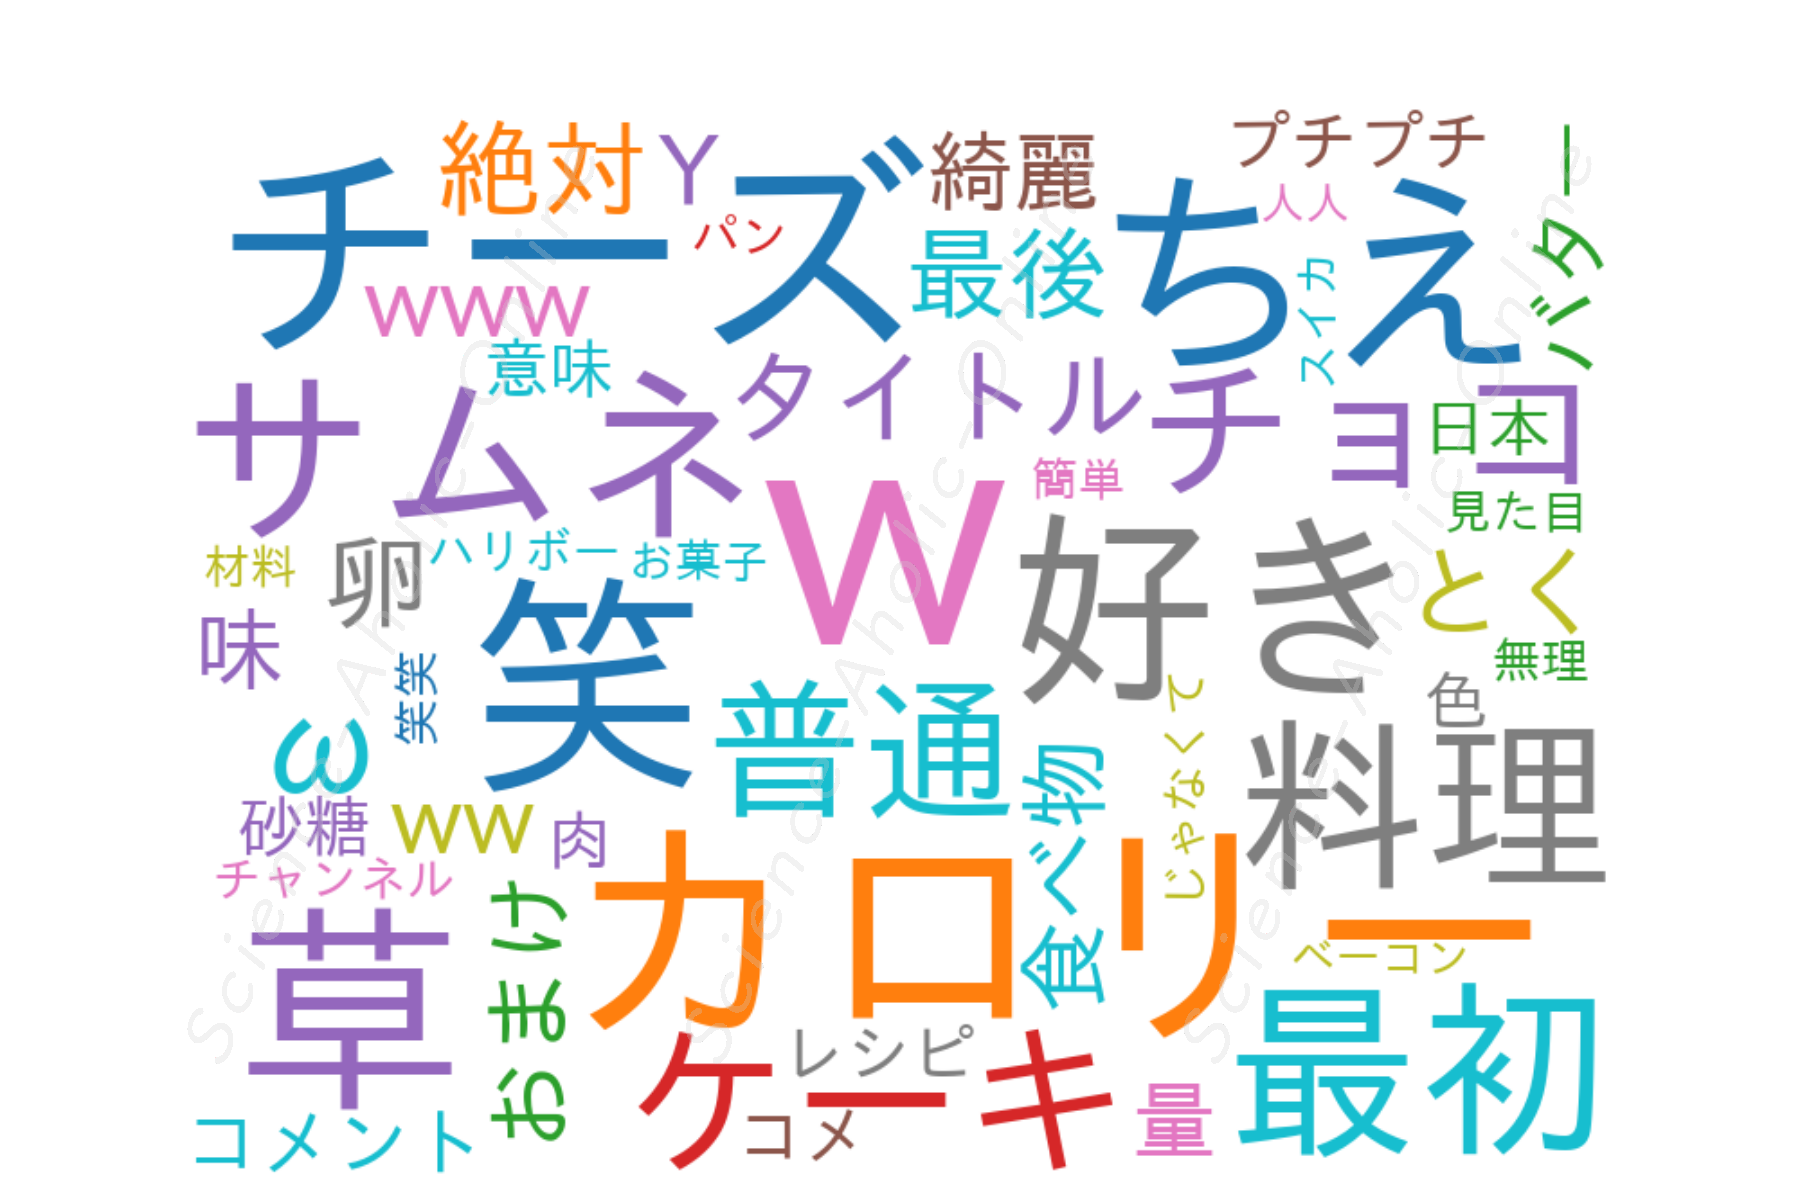 https://science-aholic-online.com/wp-content/uploads/2020/08/wordcloud_ちえとく.png